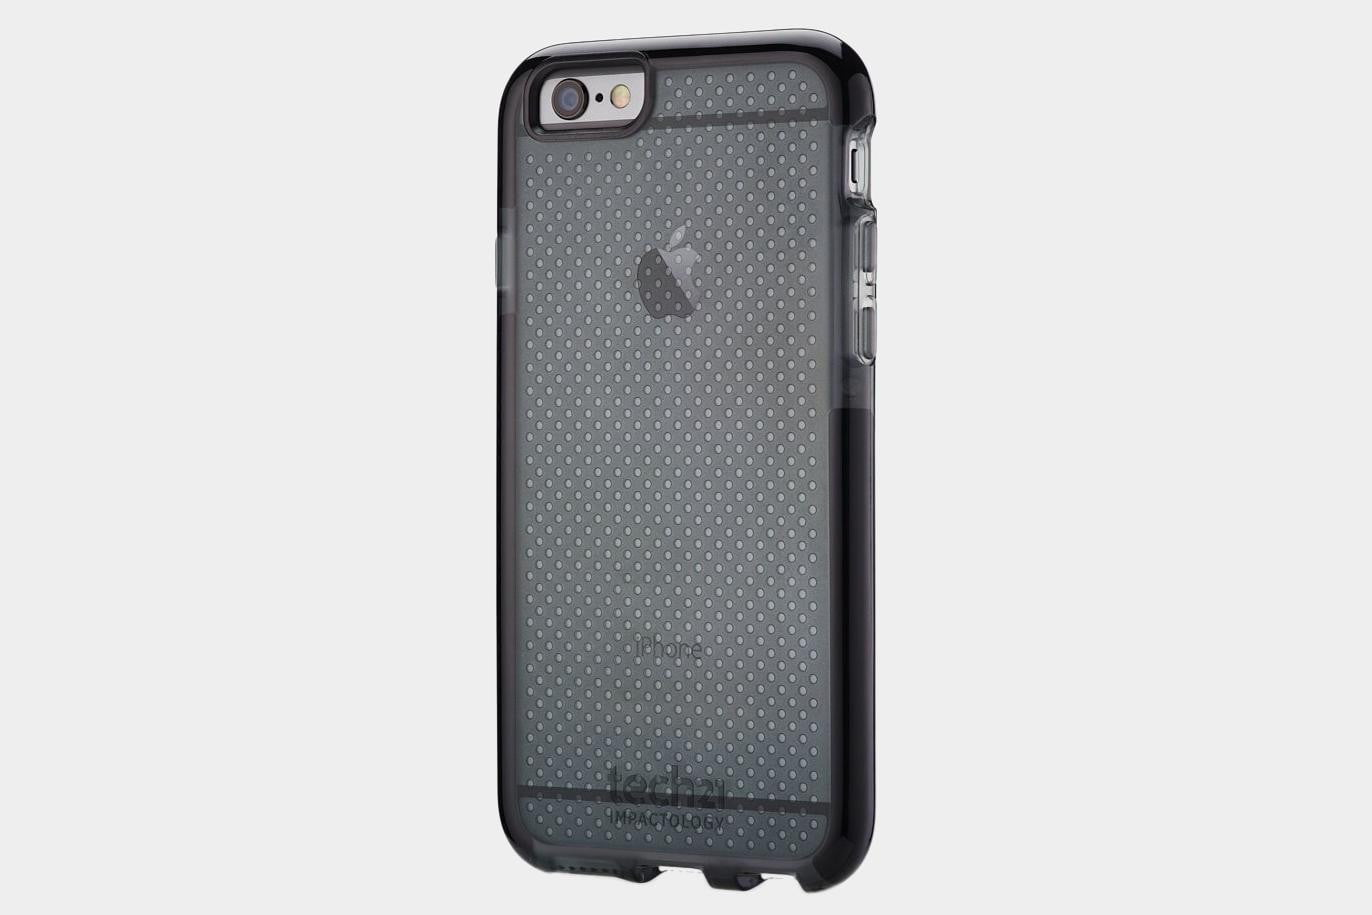 iphone 6 bumper case tech 21